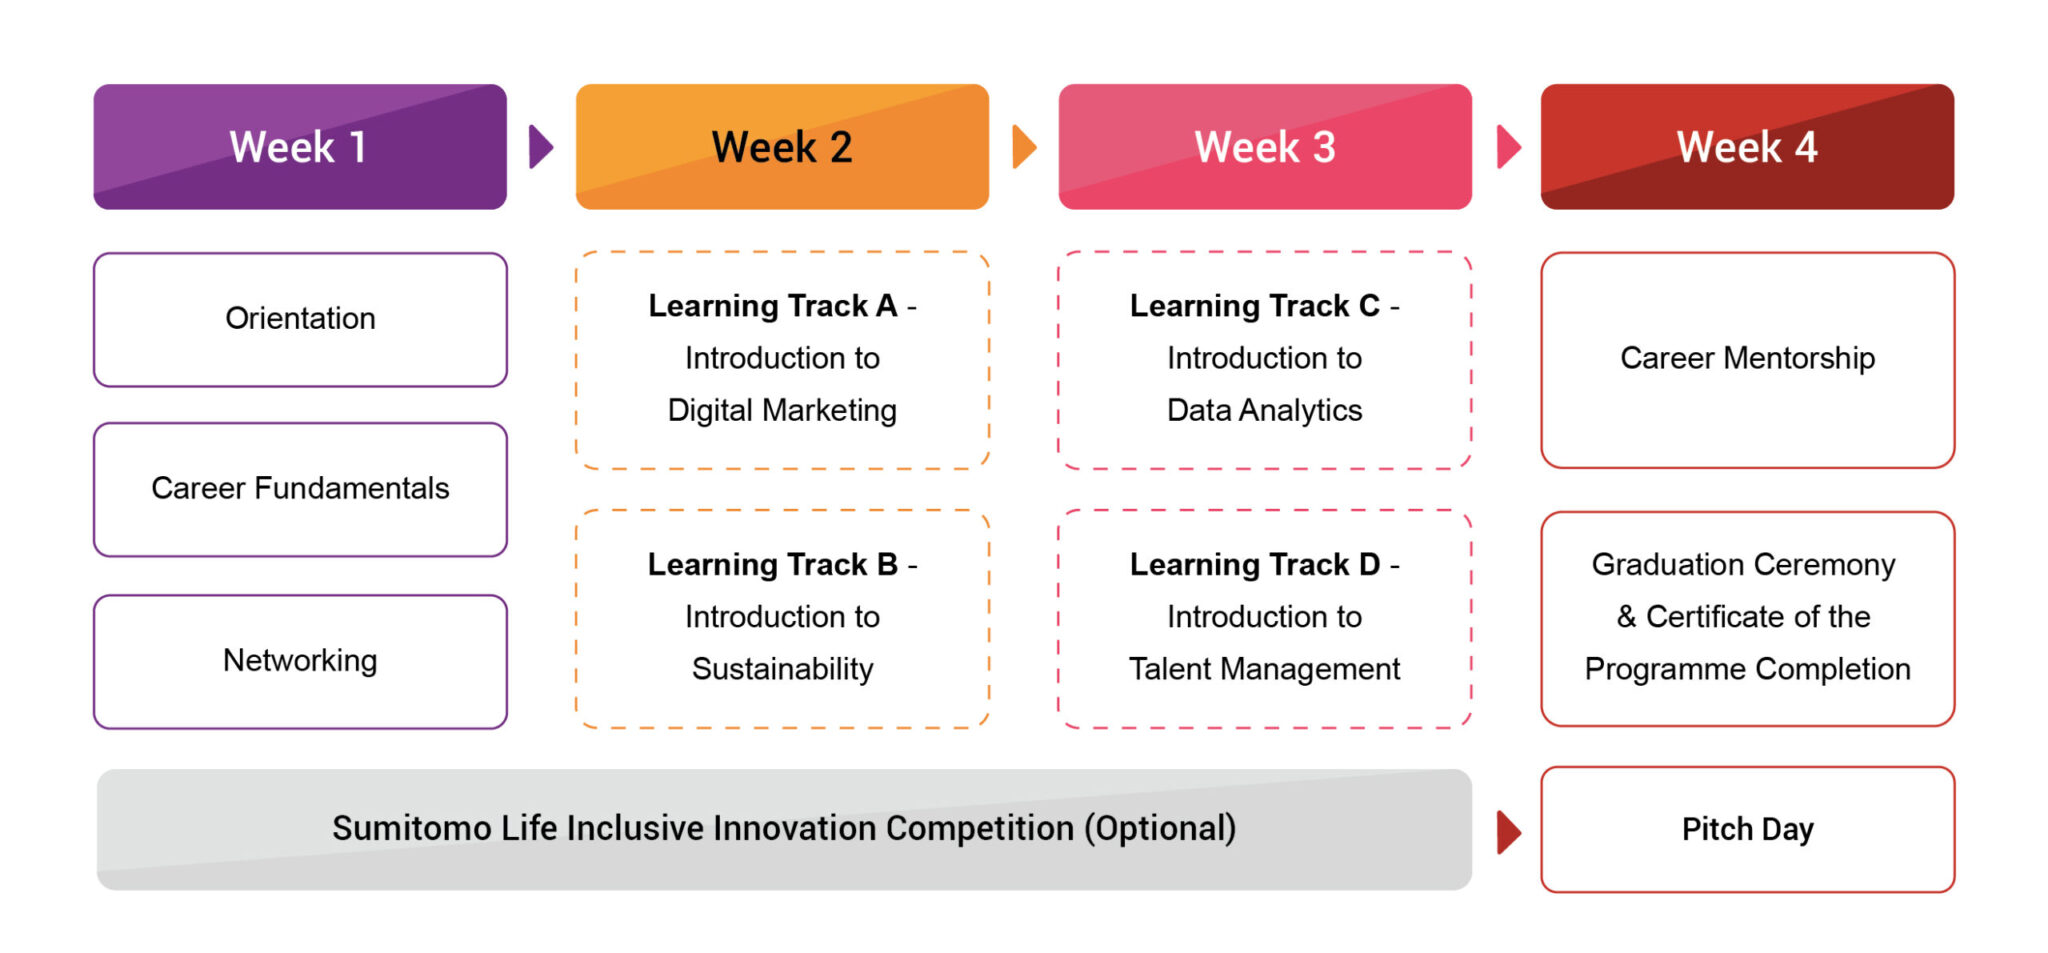 Programme schedule from week 1 to 4. Week 1 consists of orientation, career fundamentals & networking. Week 2 consists of learning track A (intro to digital marketing) and B (intro to sustainability). Week 3 consists of learning track C (intro to digital analyst) & D (intro to talent management). Week 4 consists of mentoring, certifications. On bottom, inclusive champion competition with pitch day at week 4 as an optional.